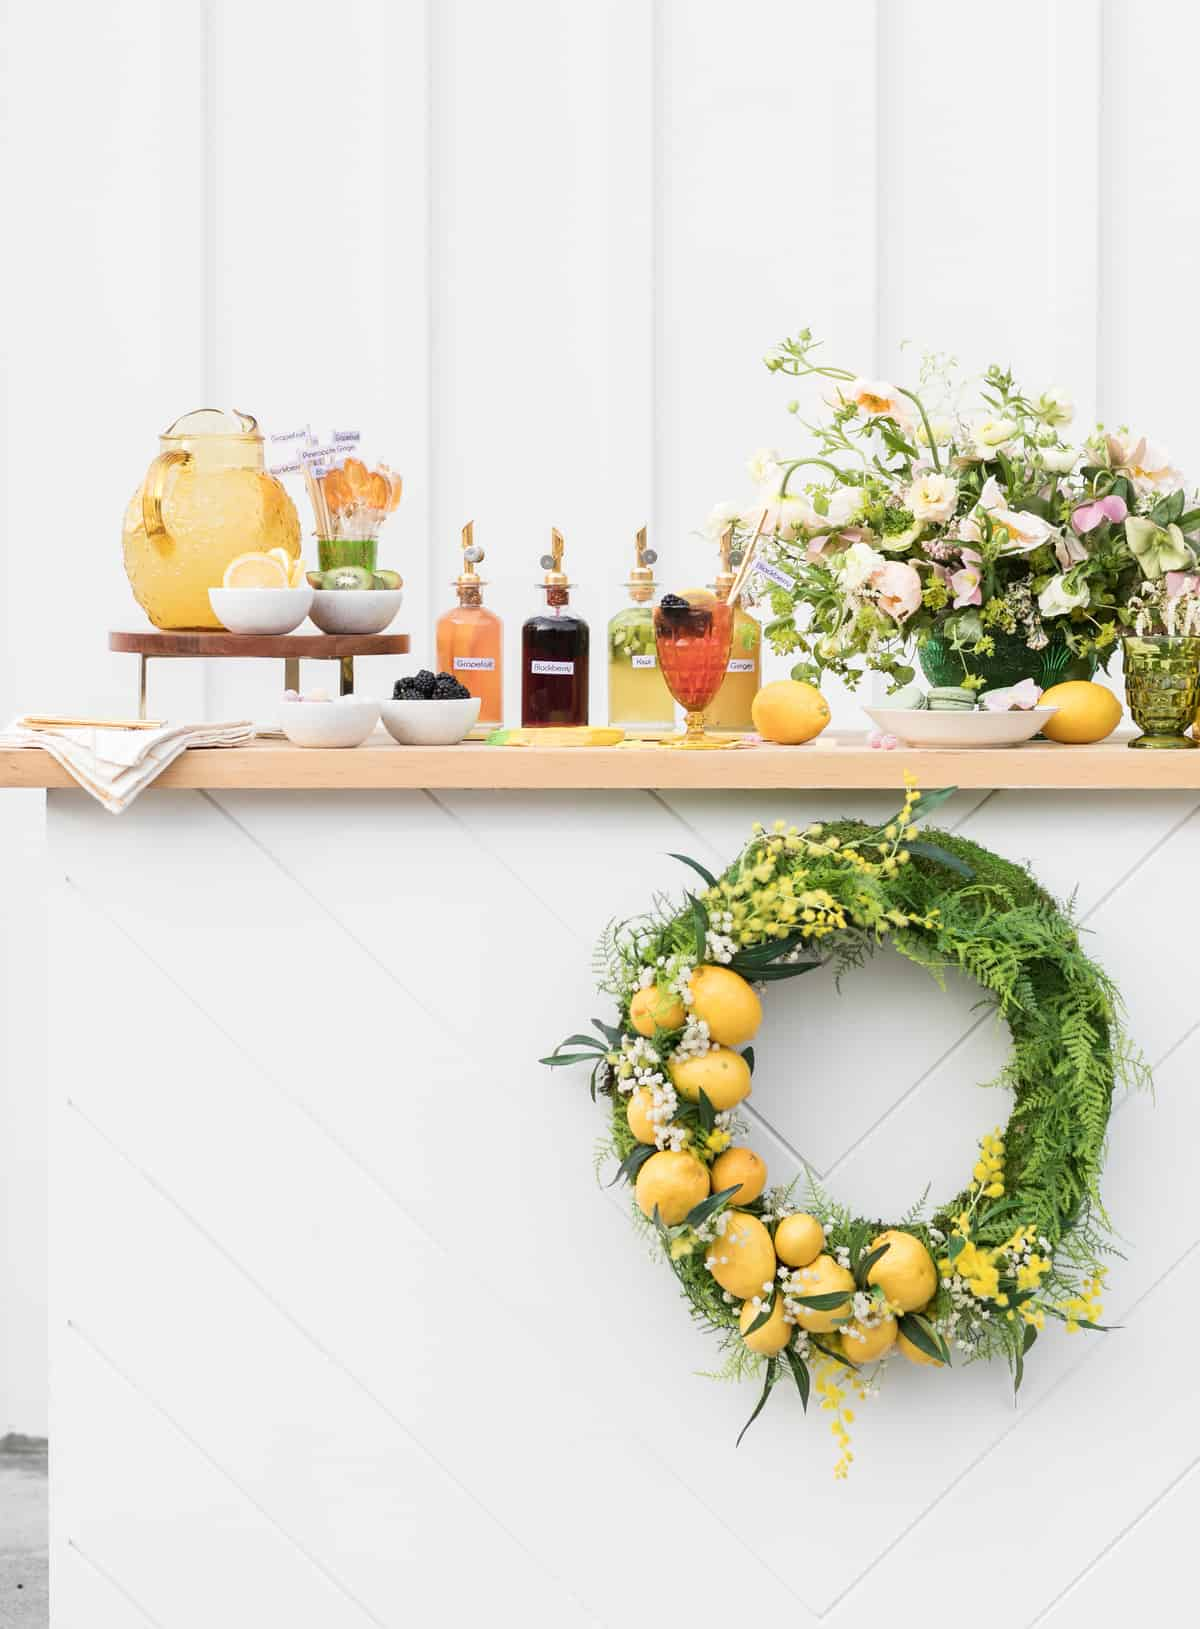 white lemonade stand with homemade syrups, lemon wreath, flowers.